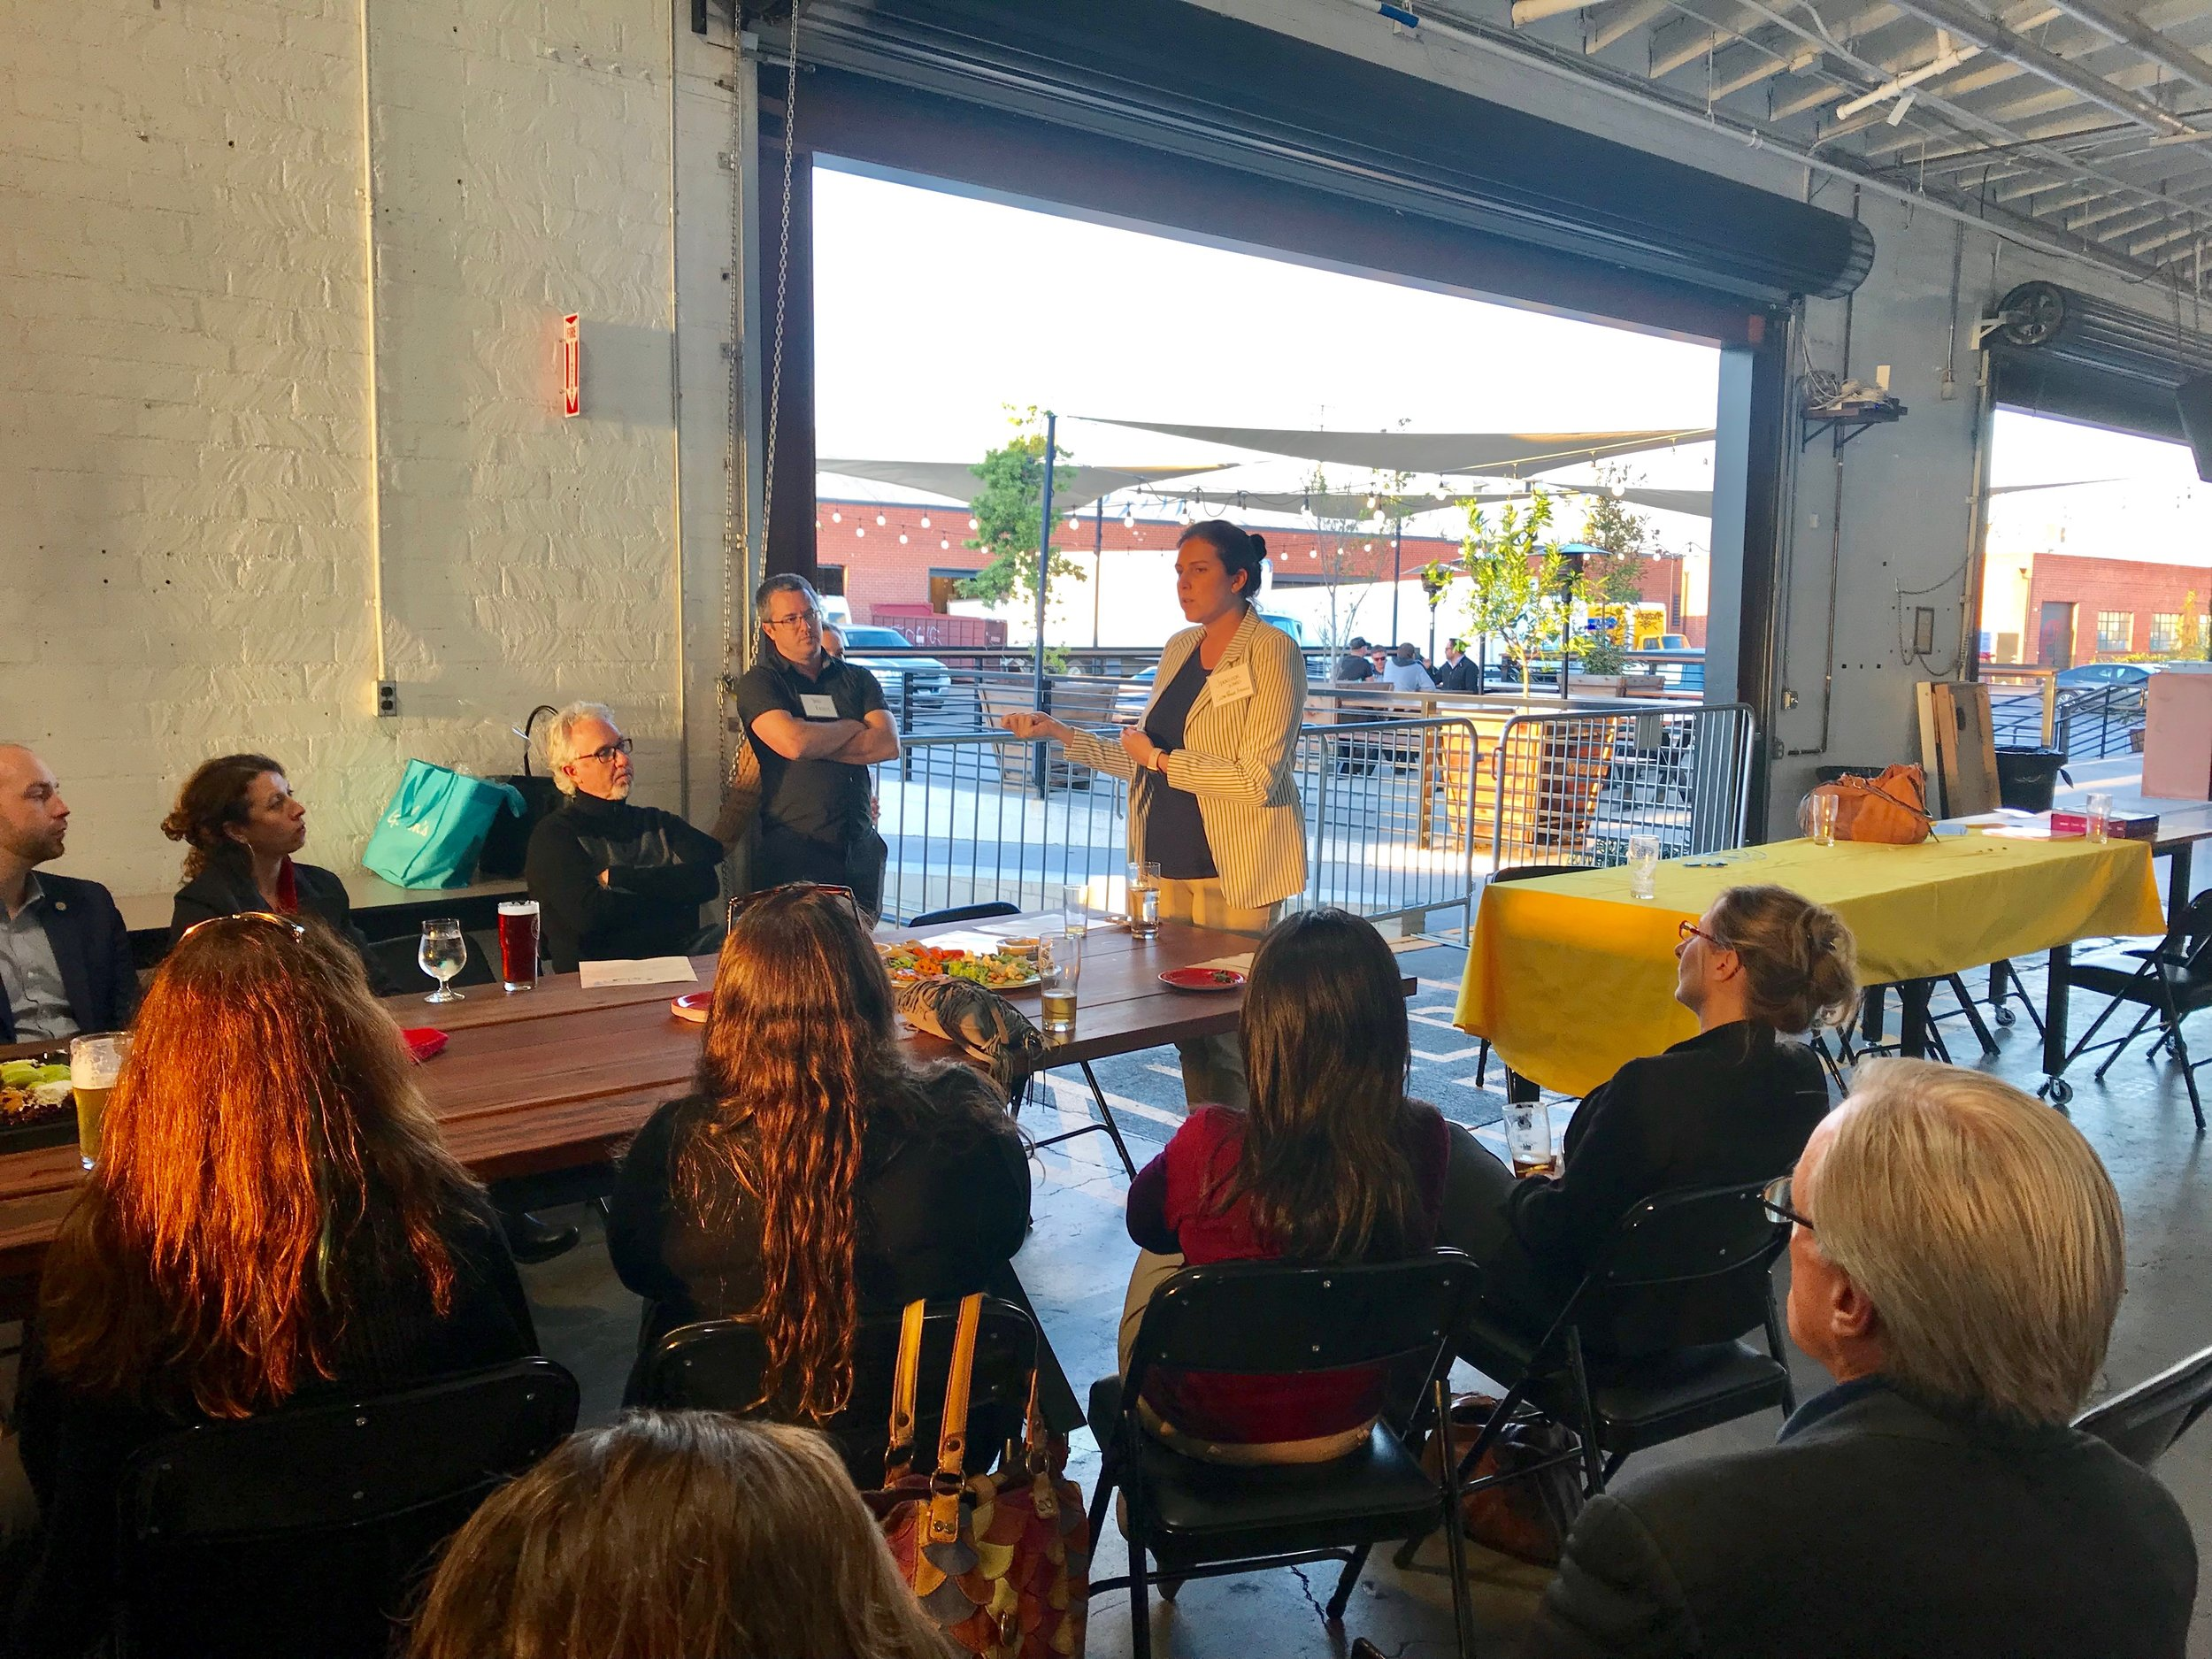 Above: at our most recent SBBEC mixer on March 20, 2019, attendees enjoyed appetizers and beers at Common Space Brewery while learning about the new Clean Power Alliance energy options available in the South Bay. The next mixer will take place in early July 2019 and will be announced in the coming months!